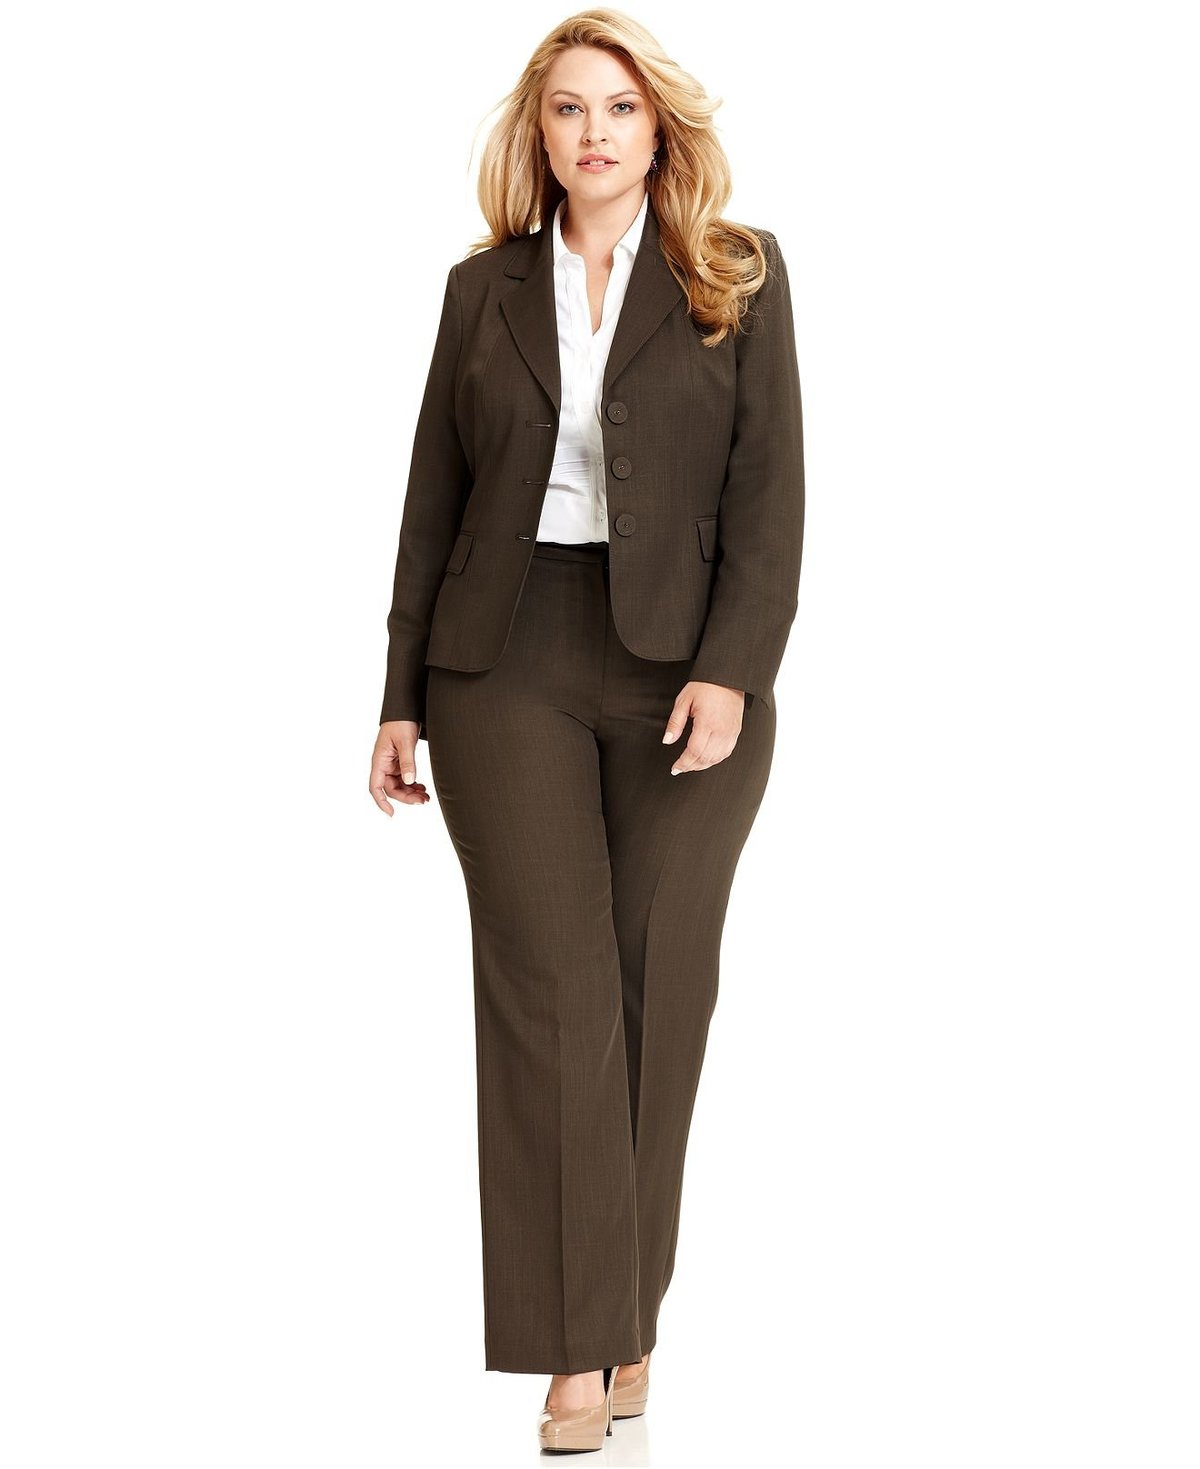 Fashionable office attire for women 5